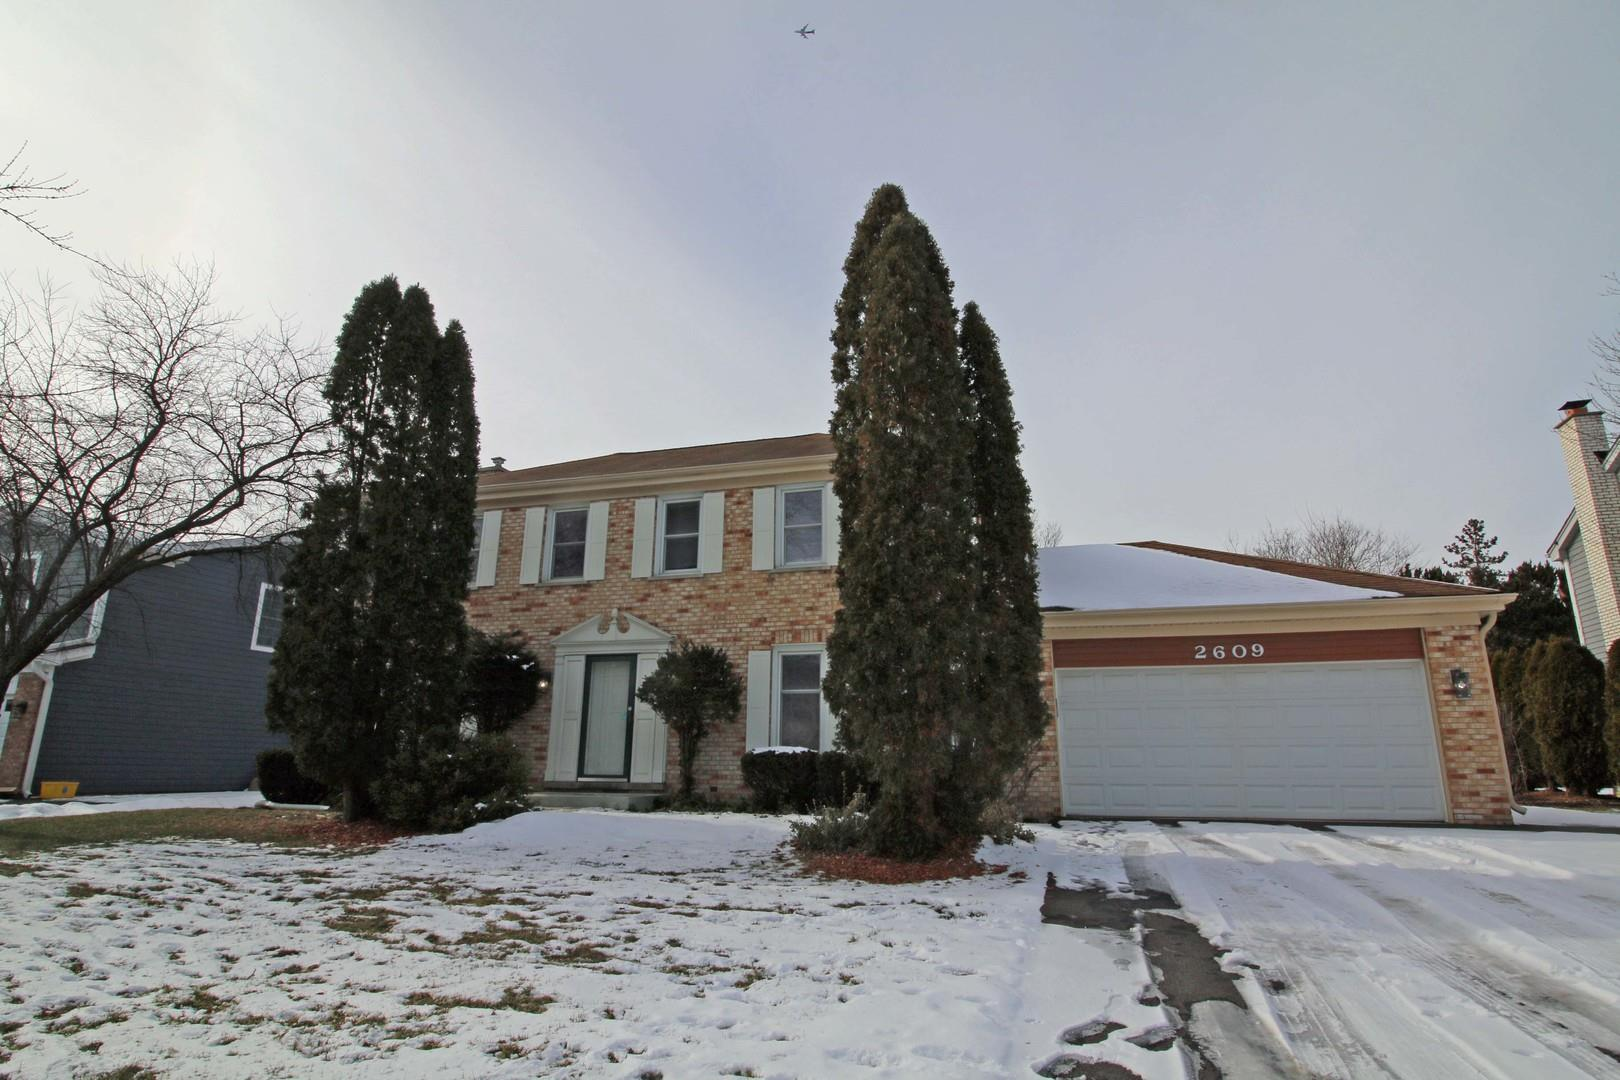 2609 Arrowwood Lane, Rolling Meadows, IL 60008 - #: 10943072